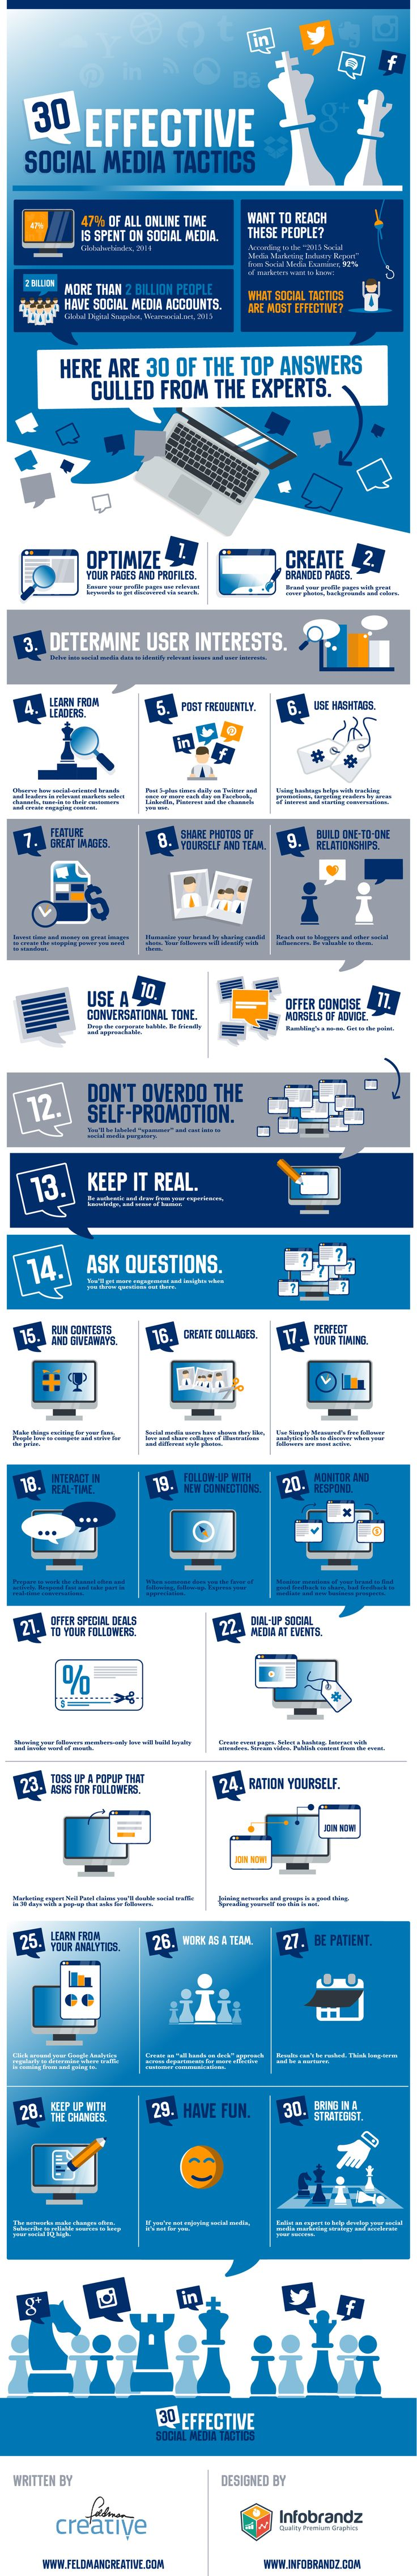 30 Effective Social Media Tactics #infographic #SocialMedia